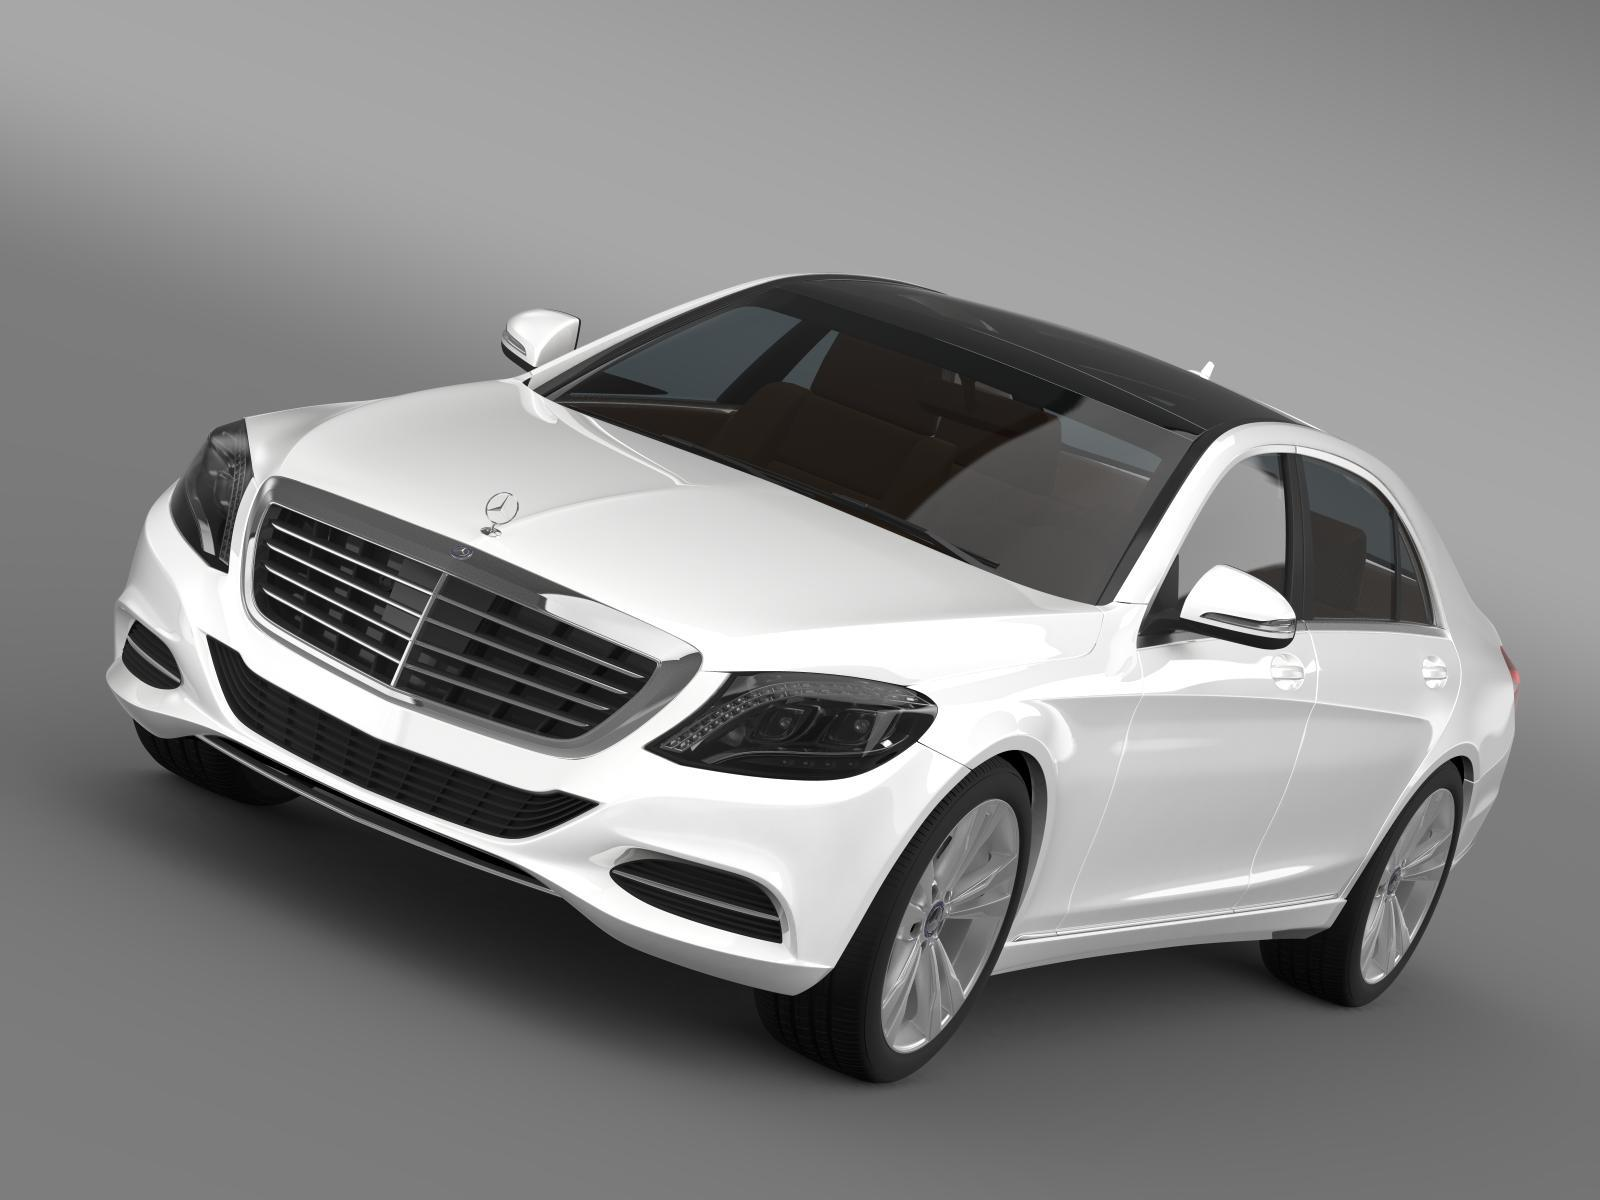 Mercedes benz s 350 bluetec w222 2013 by creator 3d 3docean for Mercedes benz s 350 bluetec